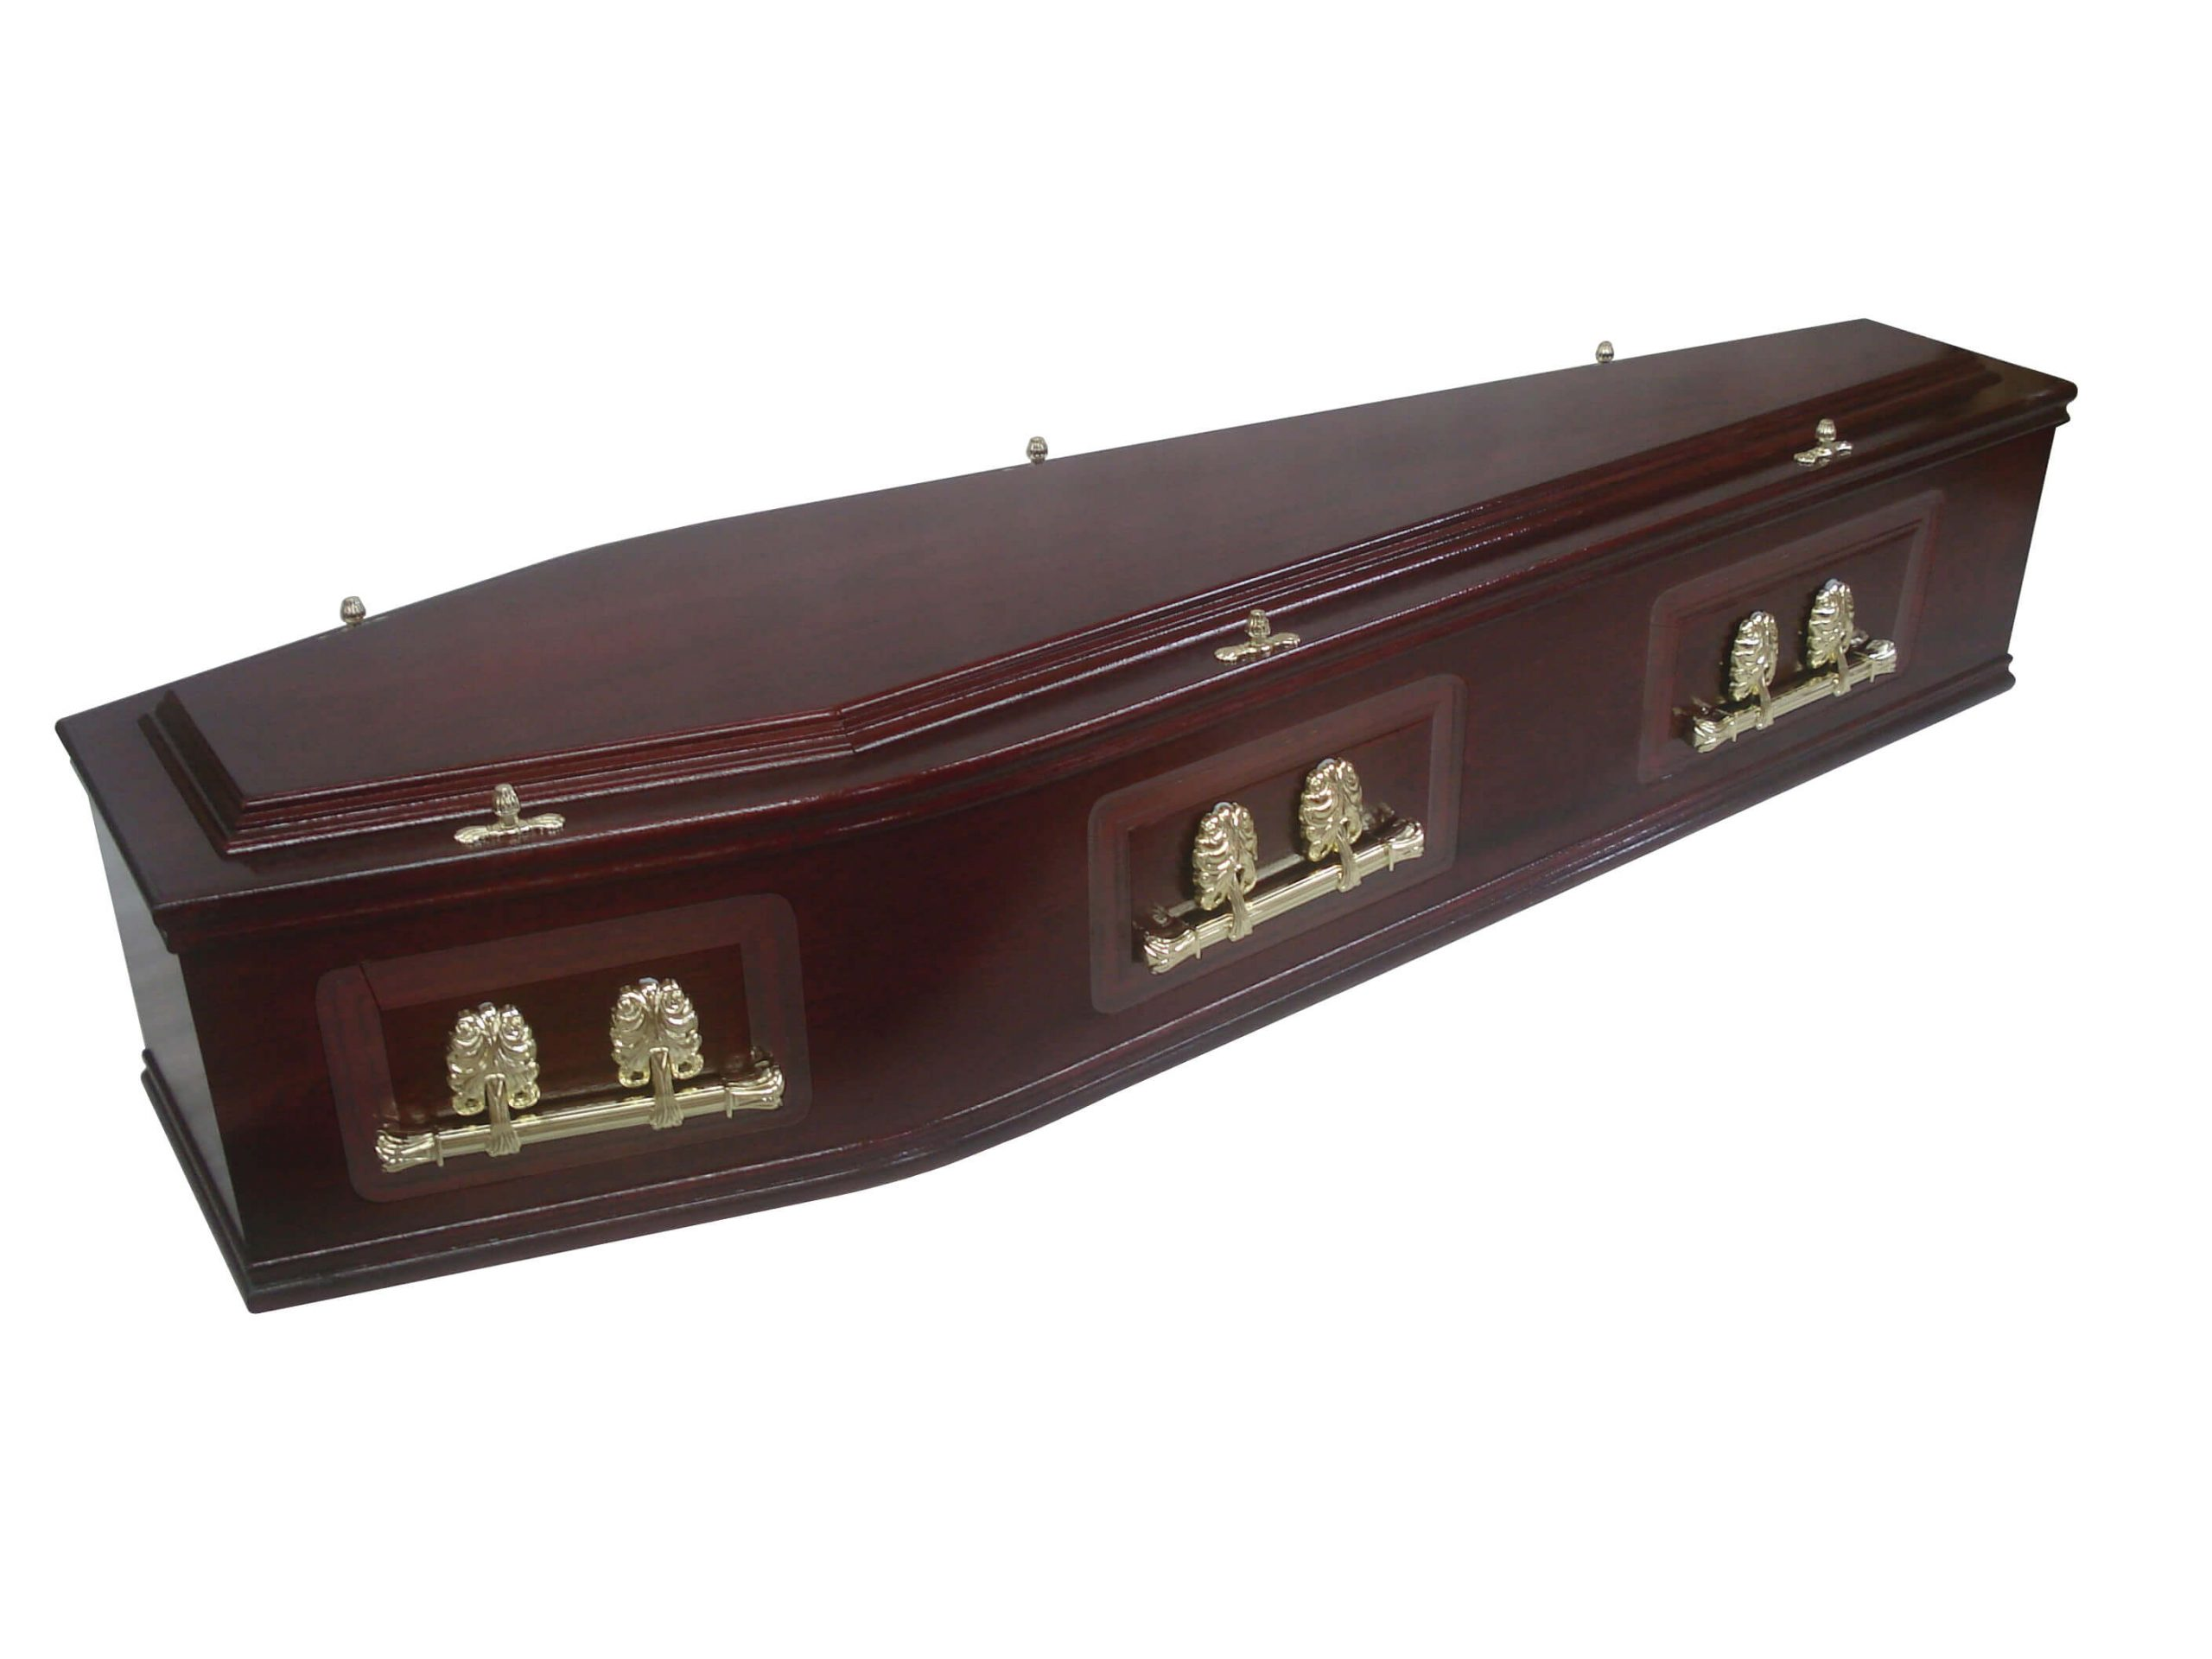 A veneered mahogany coffin with embossed side panels, double moulds and No.1 raised lid. Finished in rich dark mahogany stain.